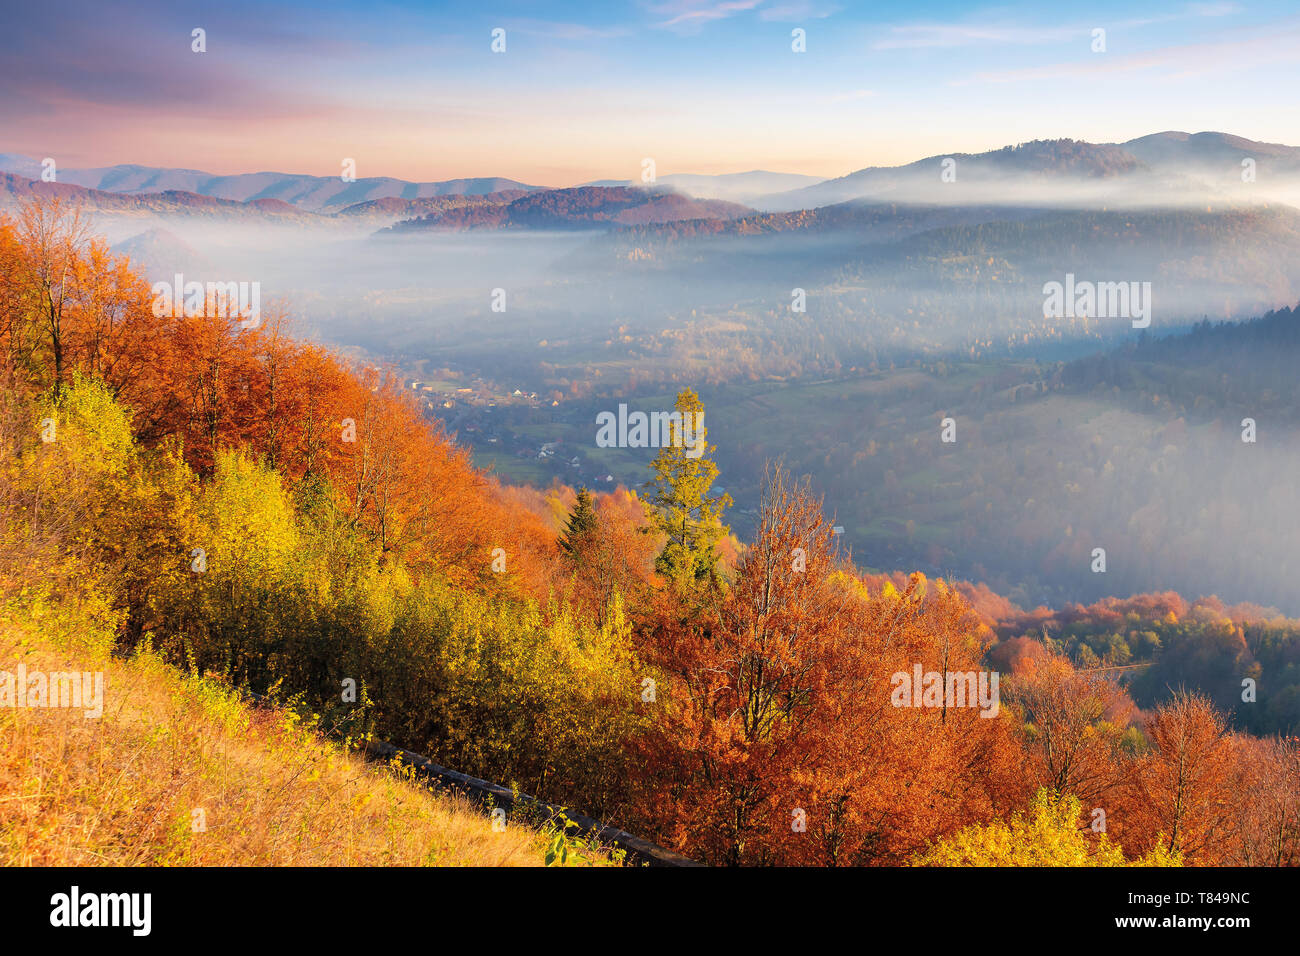 foggy autumn scenery in mountains at sunrise. red and yellow foliage on the trees. hazy weather in the valley - Stock Image